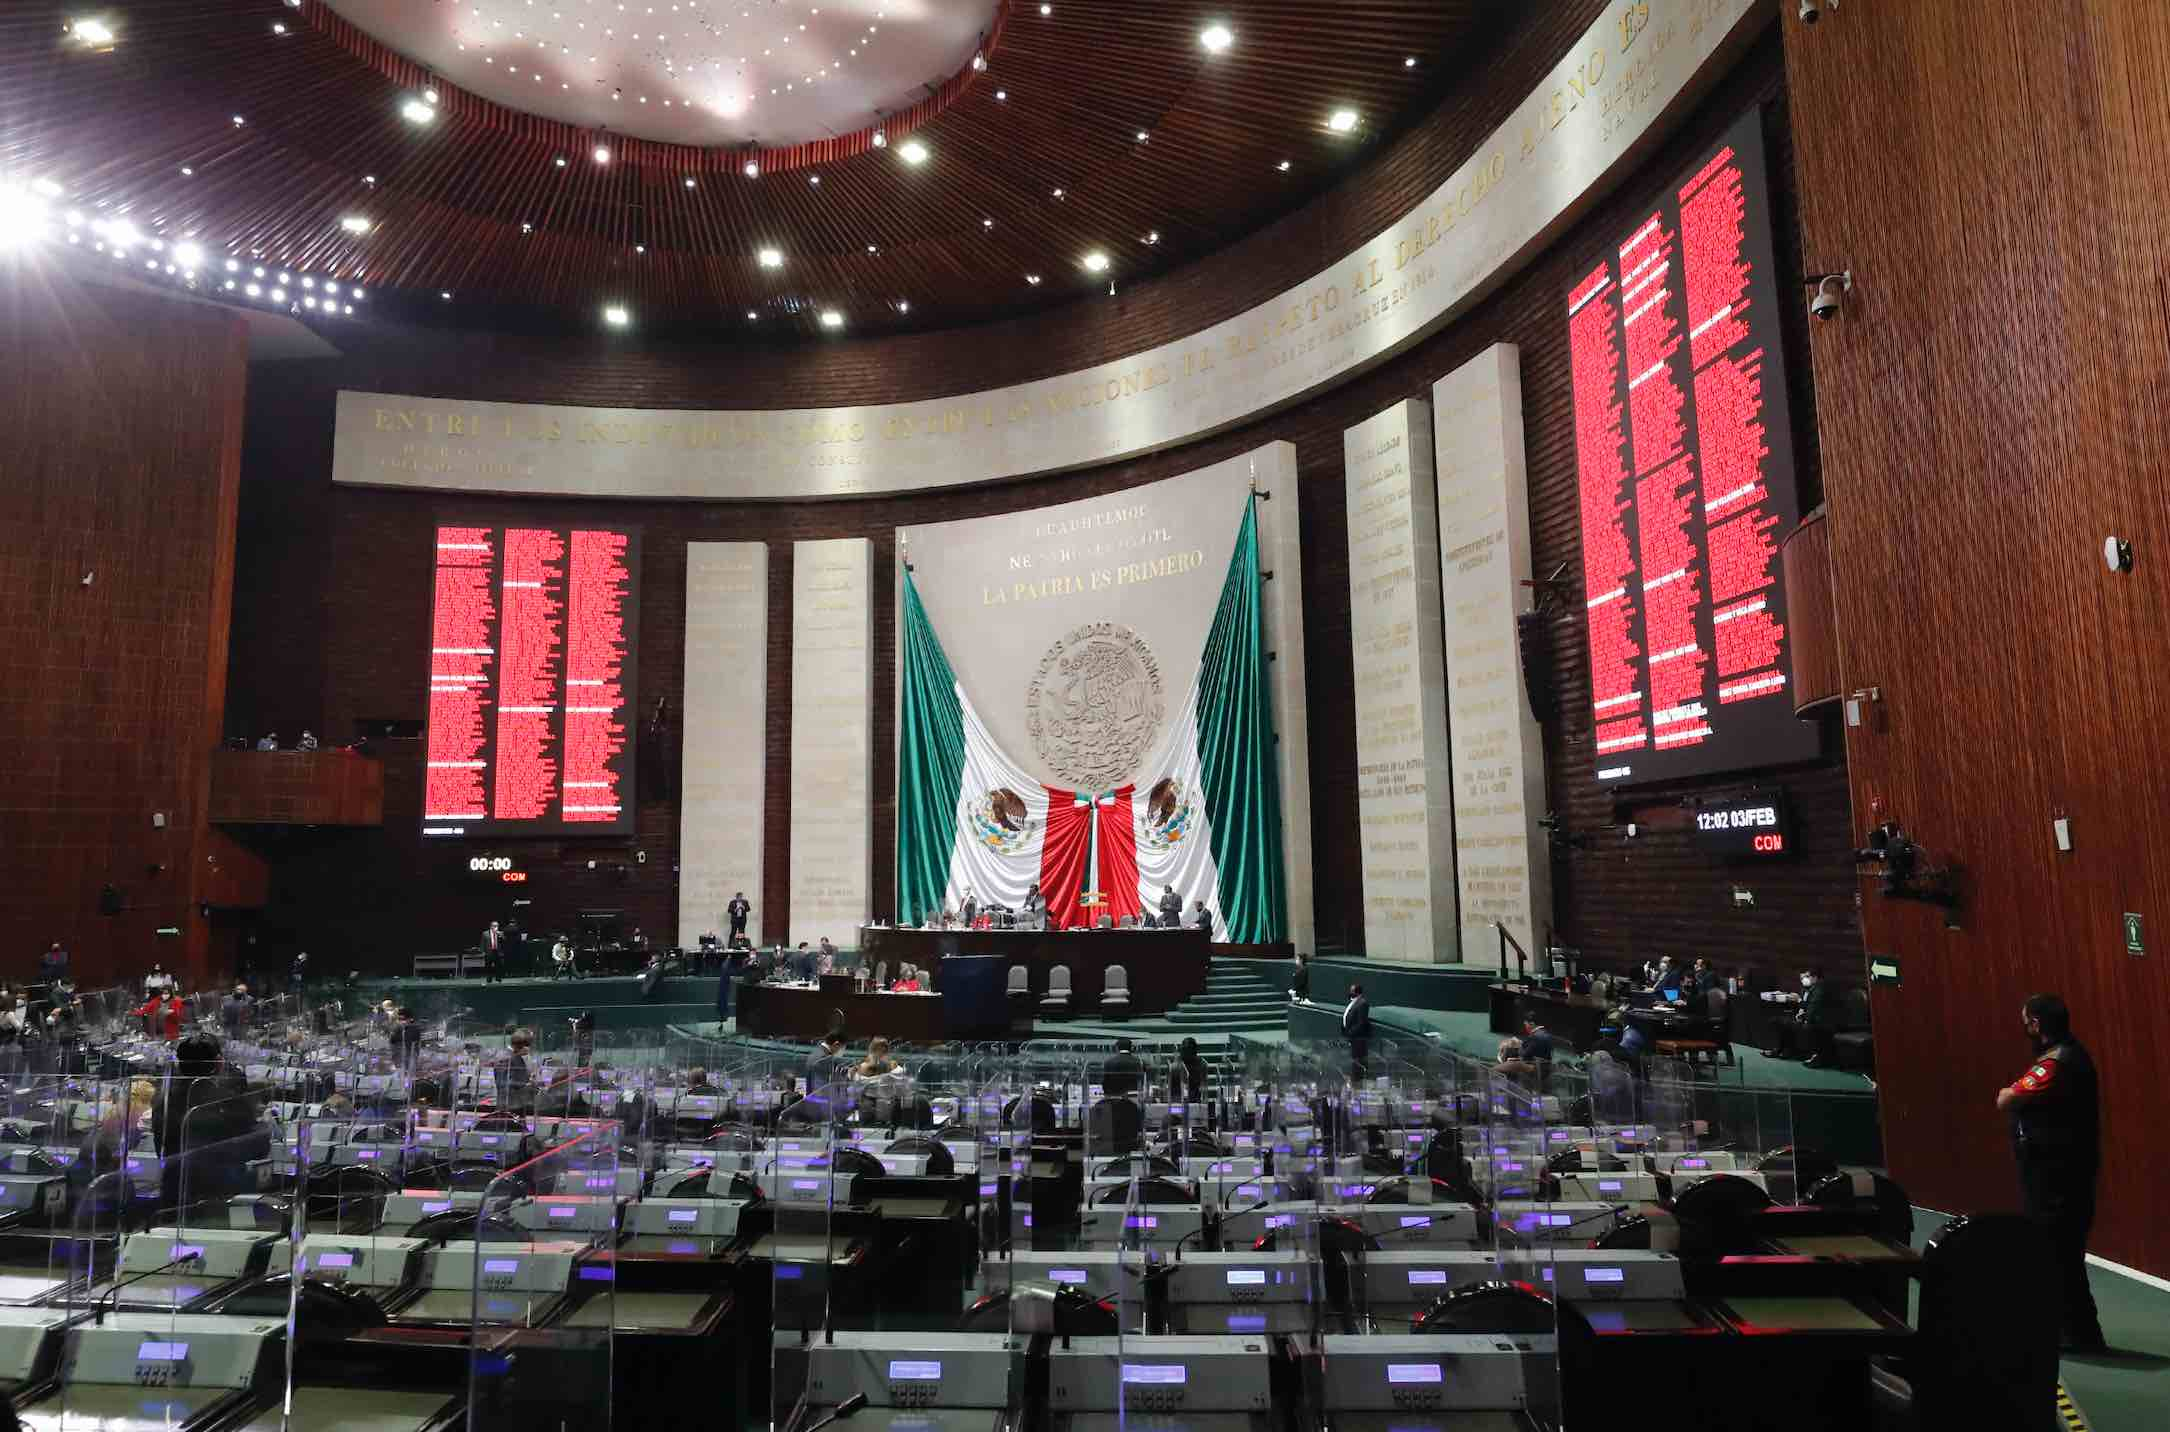 Spotlight: 2 bills that could impact Mexico's construction sector